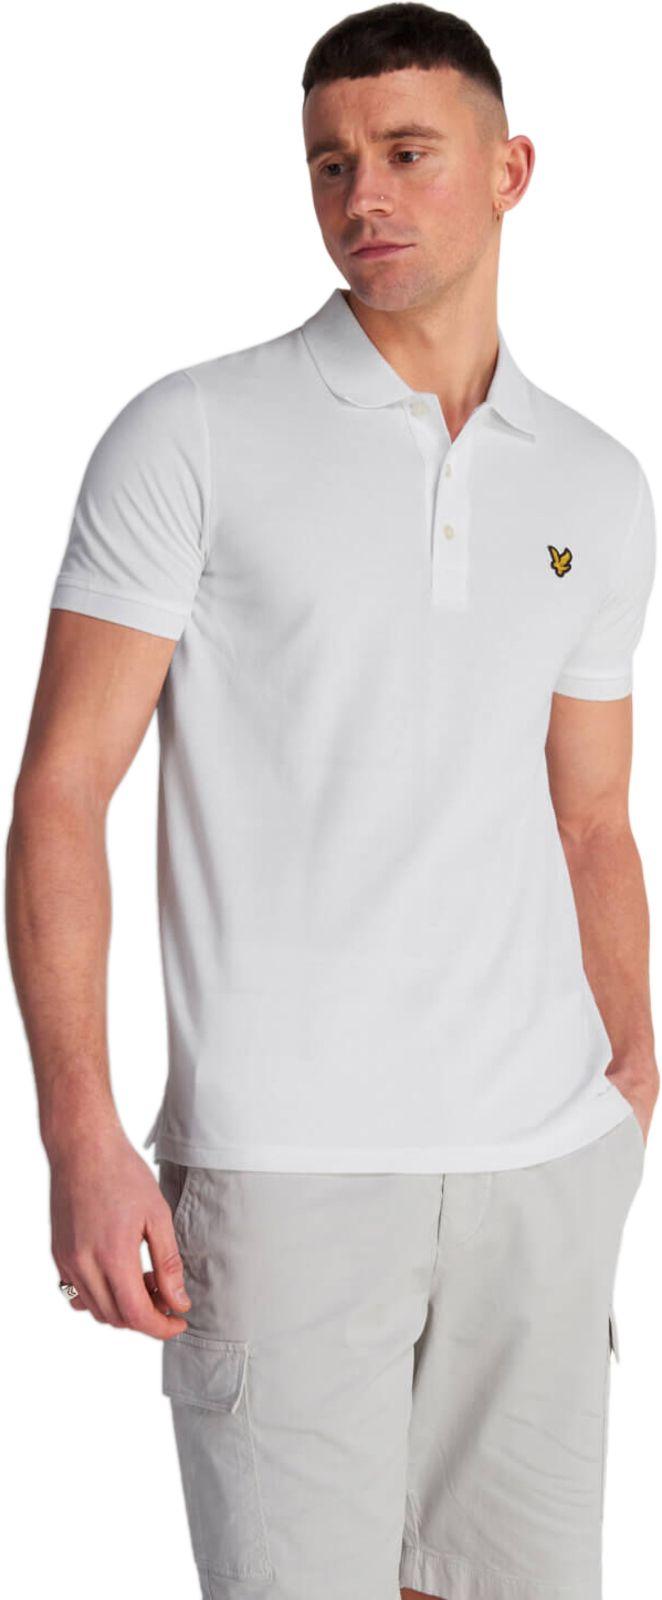 Lyle & Scott Polo Shirt White